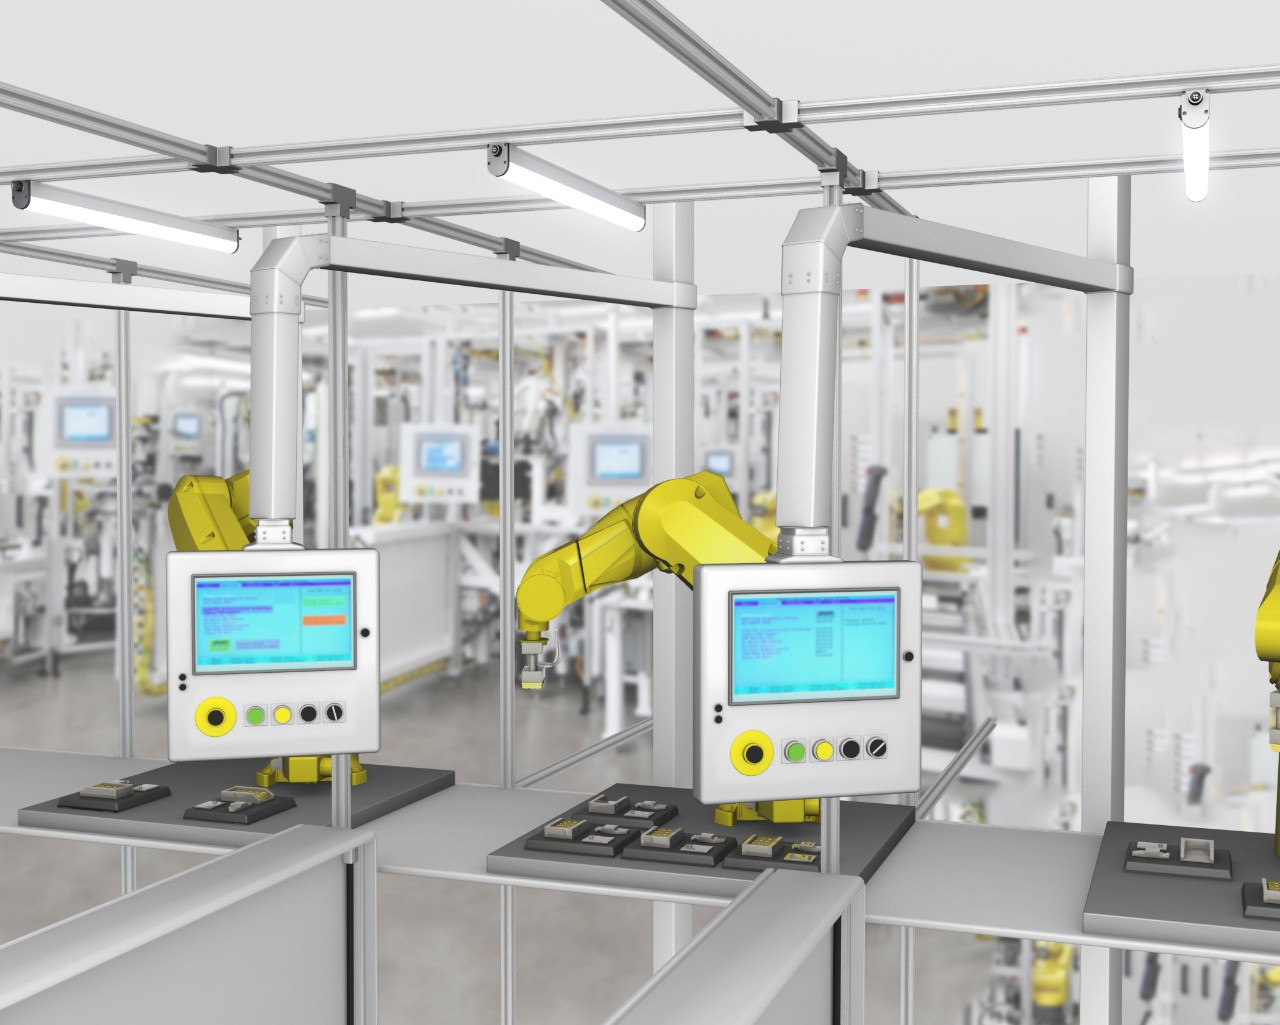 Bright lights illuminate robotic workstations